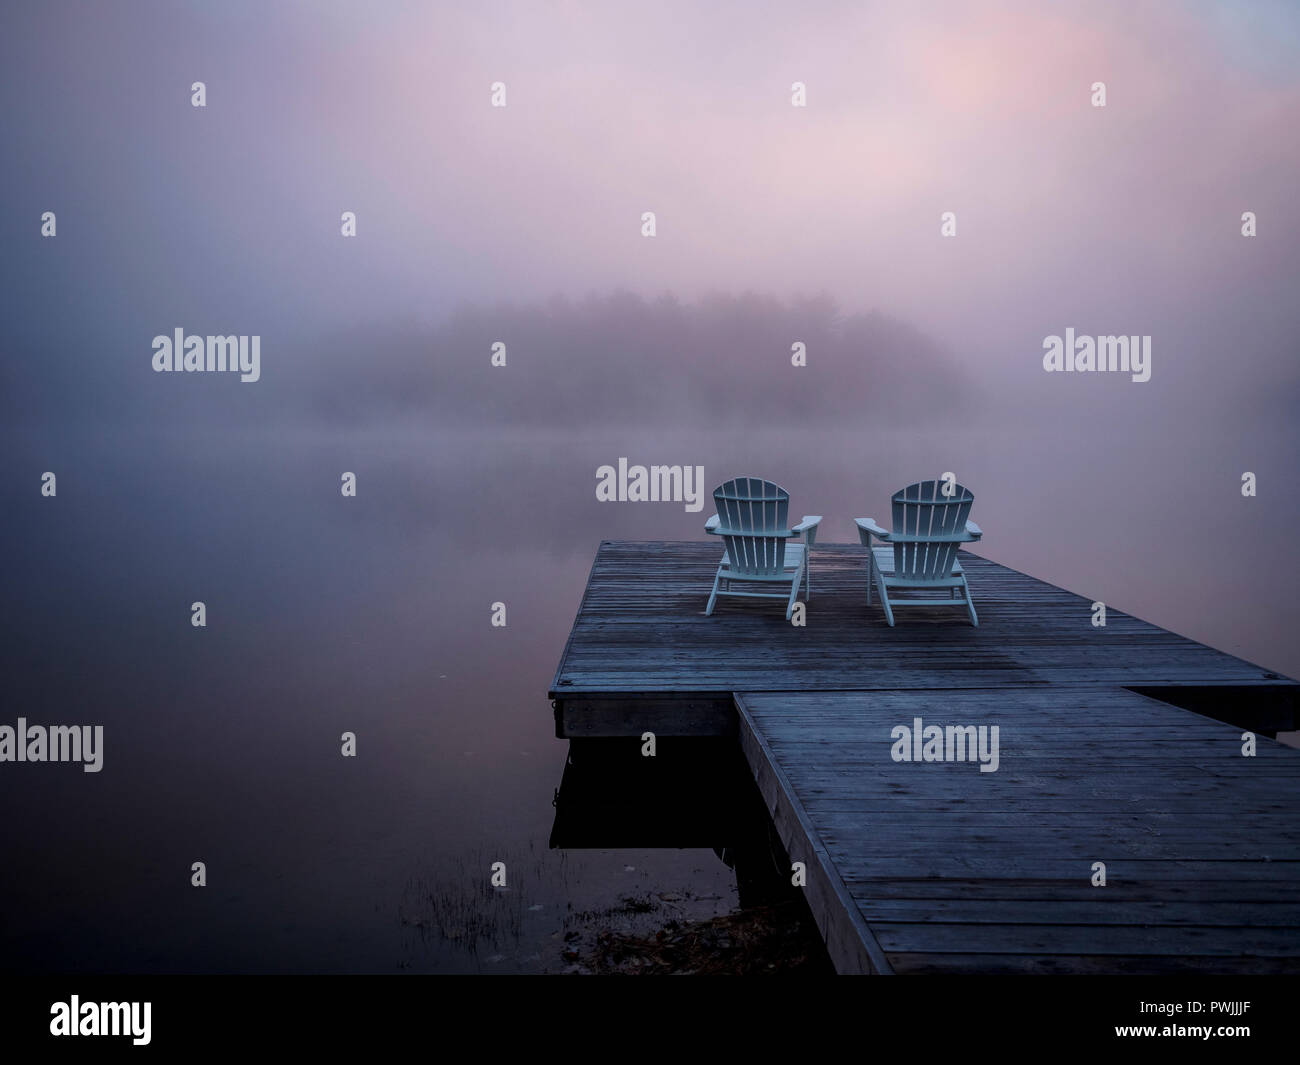 Two Muskoka Chairs in front of lake Benoir, Ontario on a wooden dock. A really foggy day on early morning with light pink & orange haze due to sunrise - Stock Image